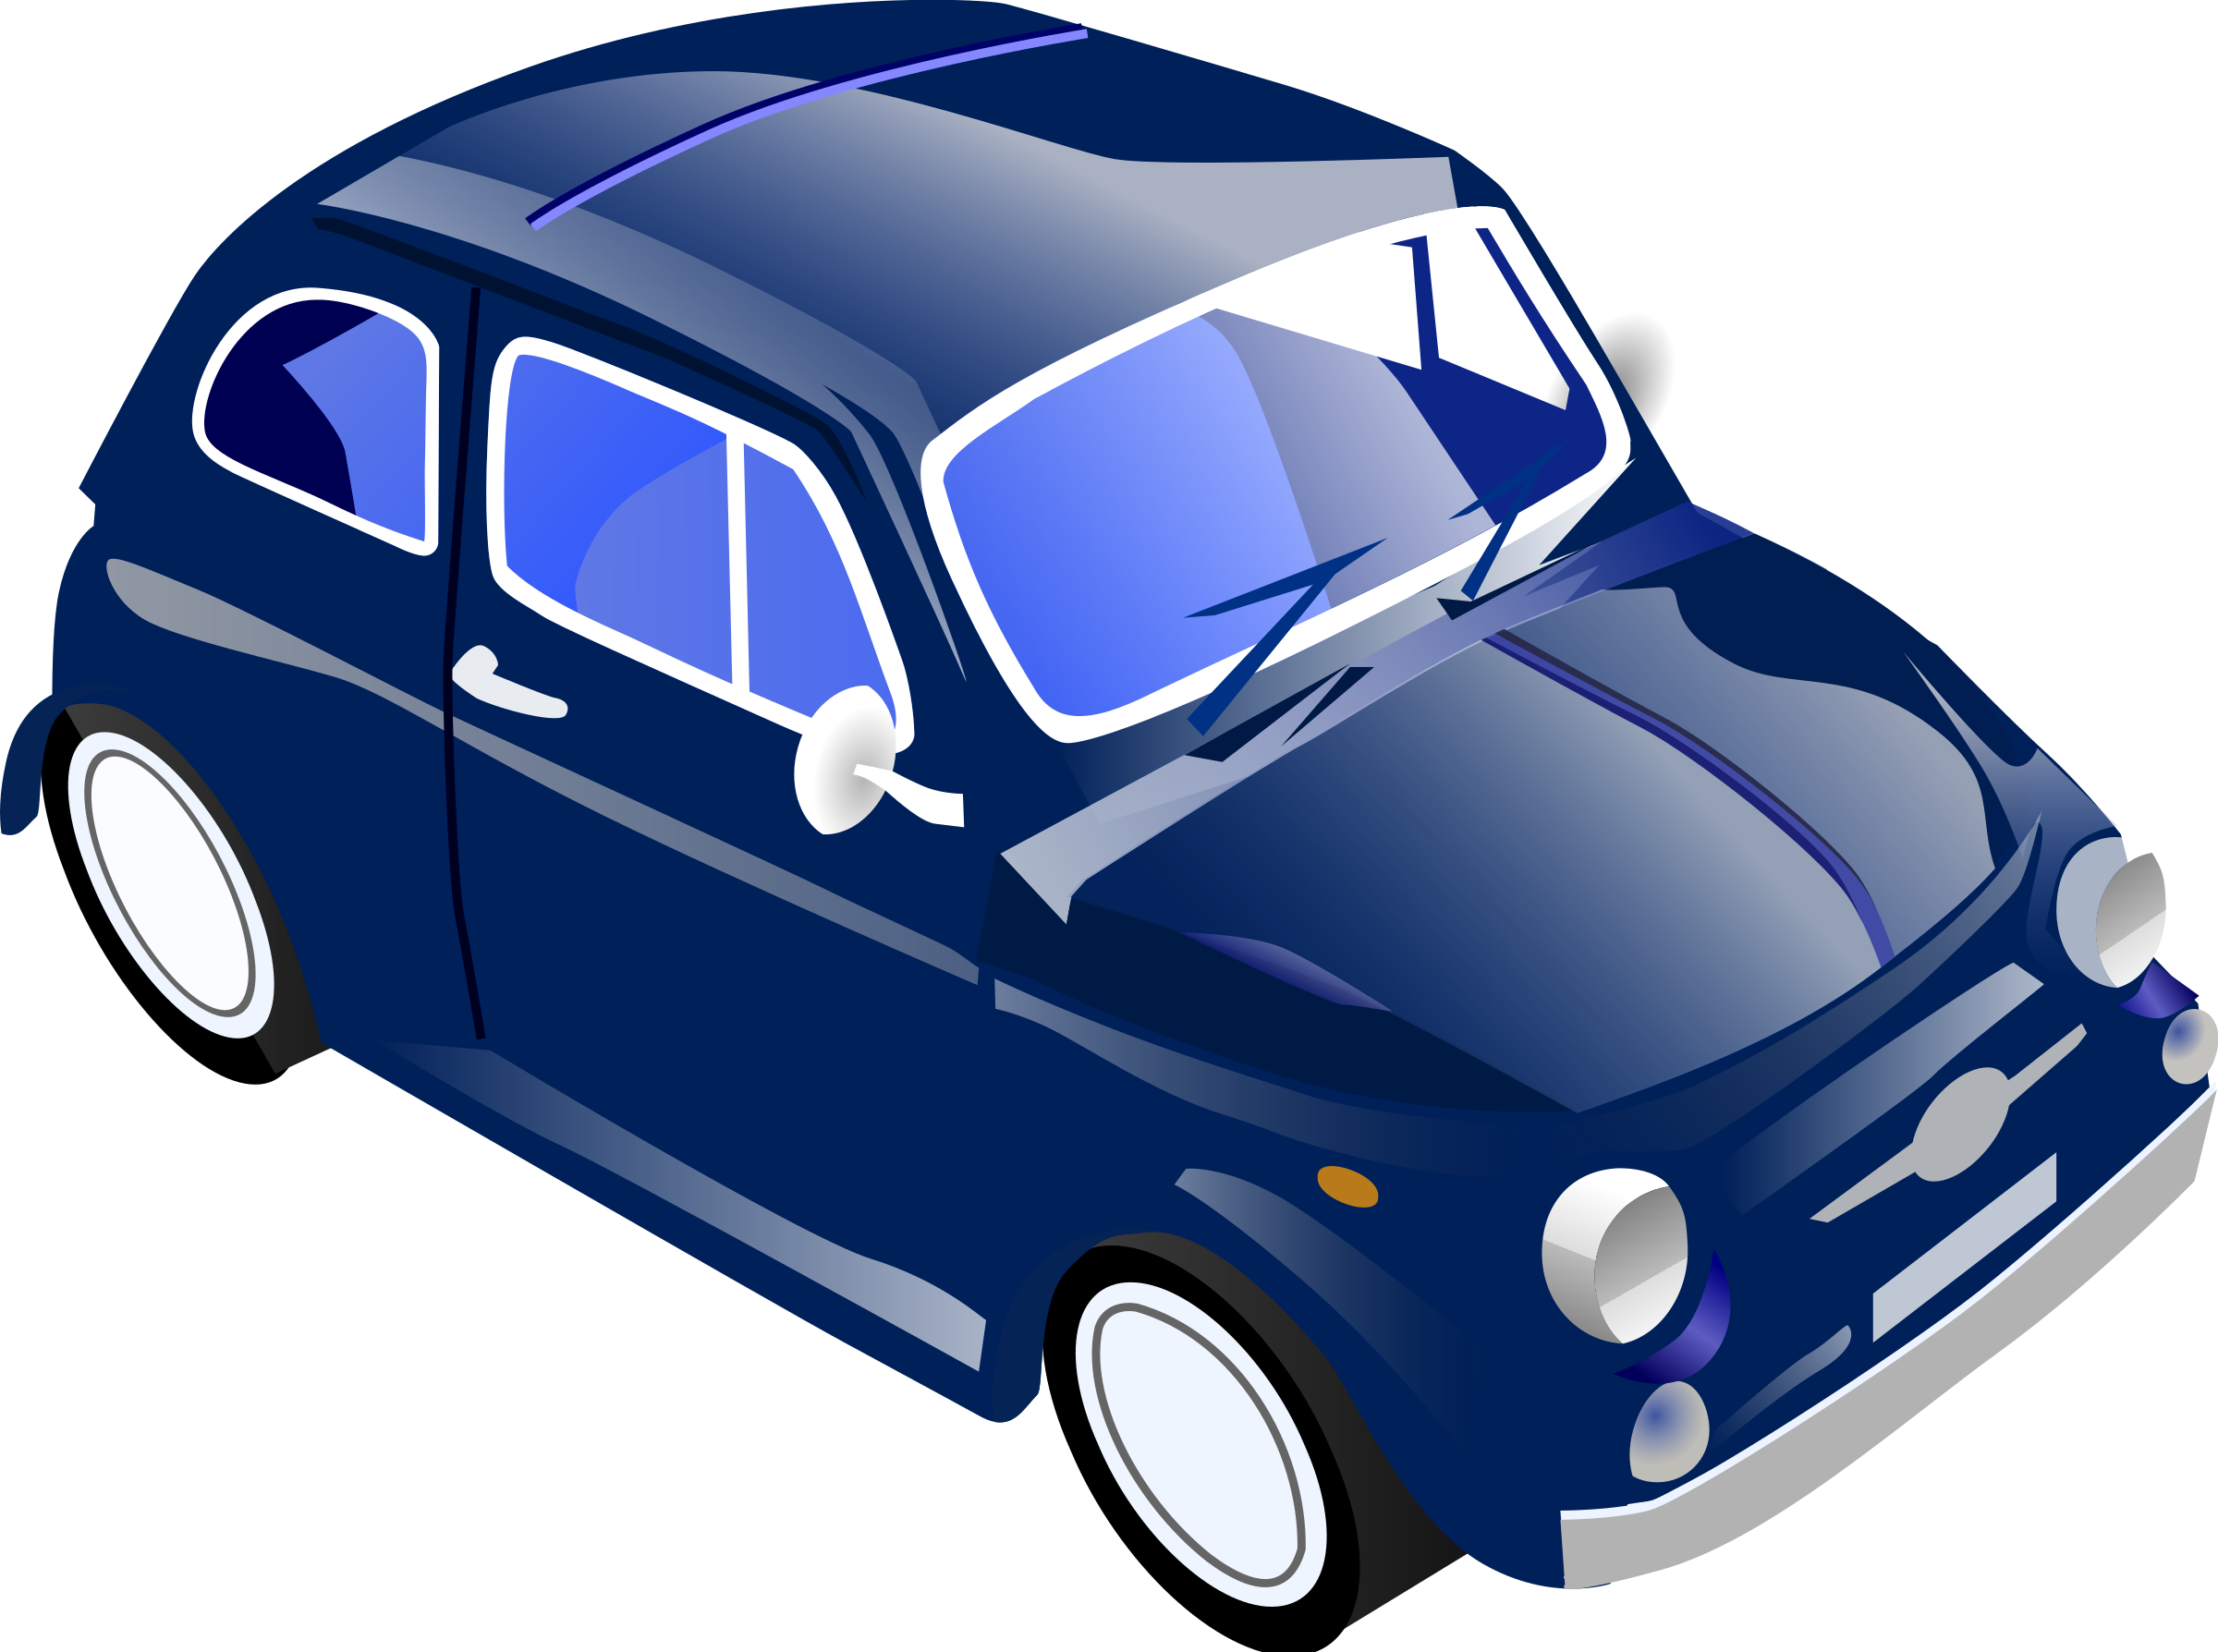 Car clipart small image library library Clipart - 500 image library library